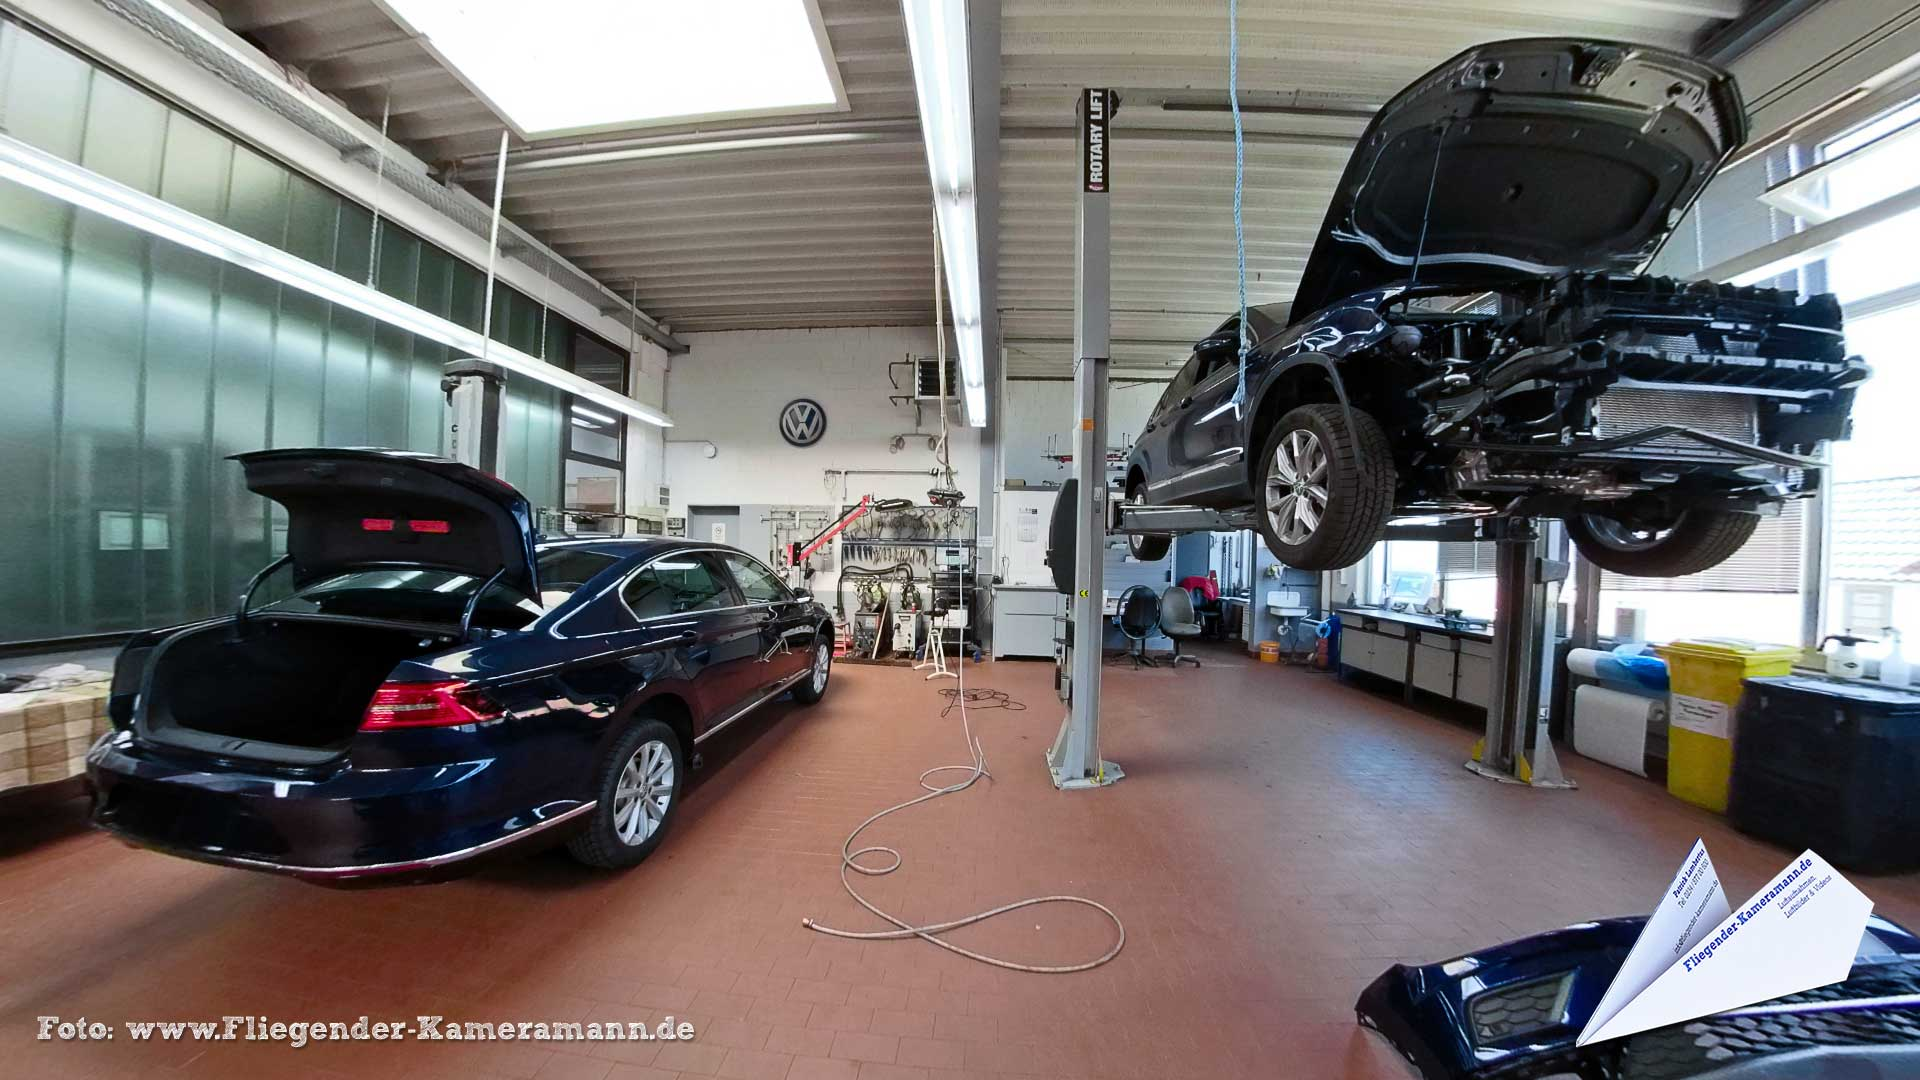 Autohaus Wicke in Bochum - 360°-Panorama